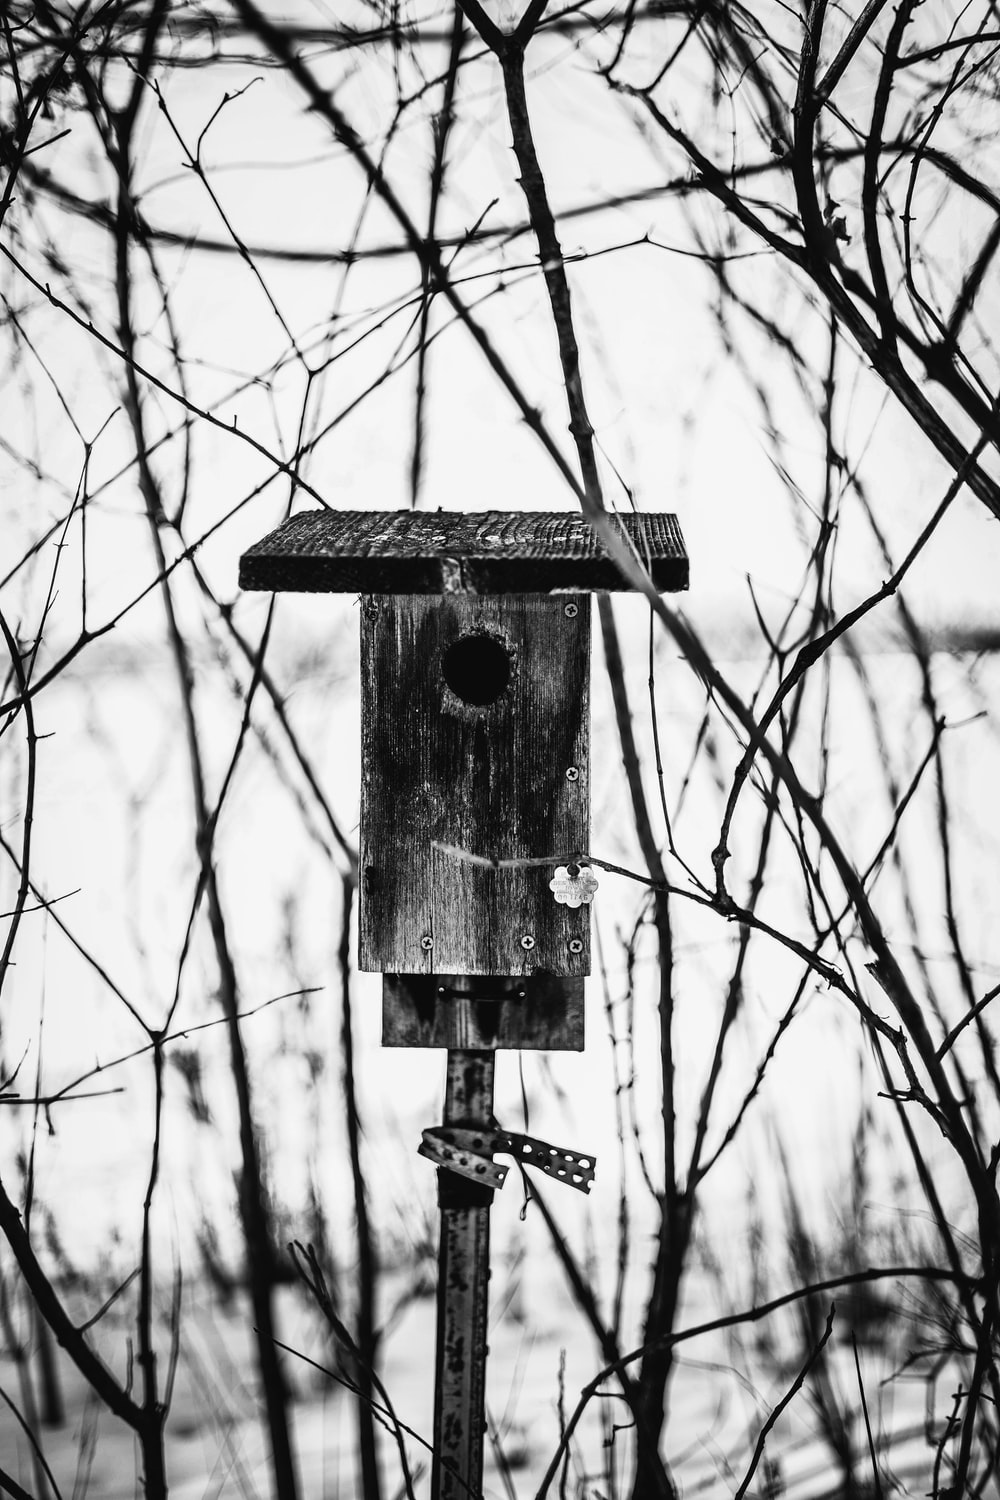 grayscale photo of wooden birdhouse